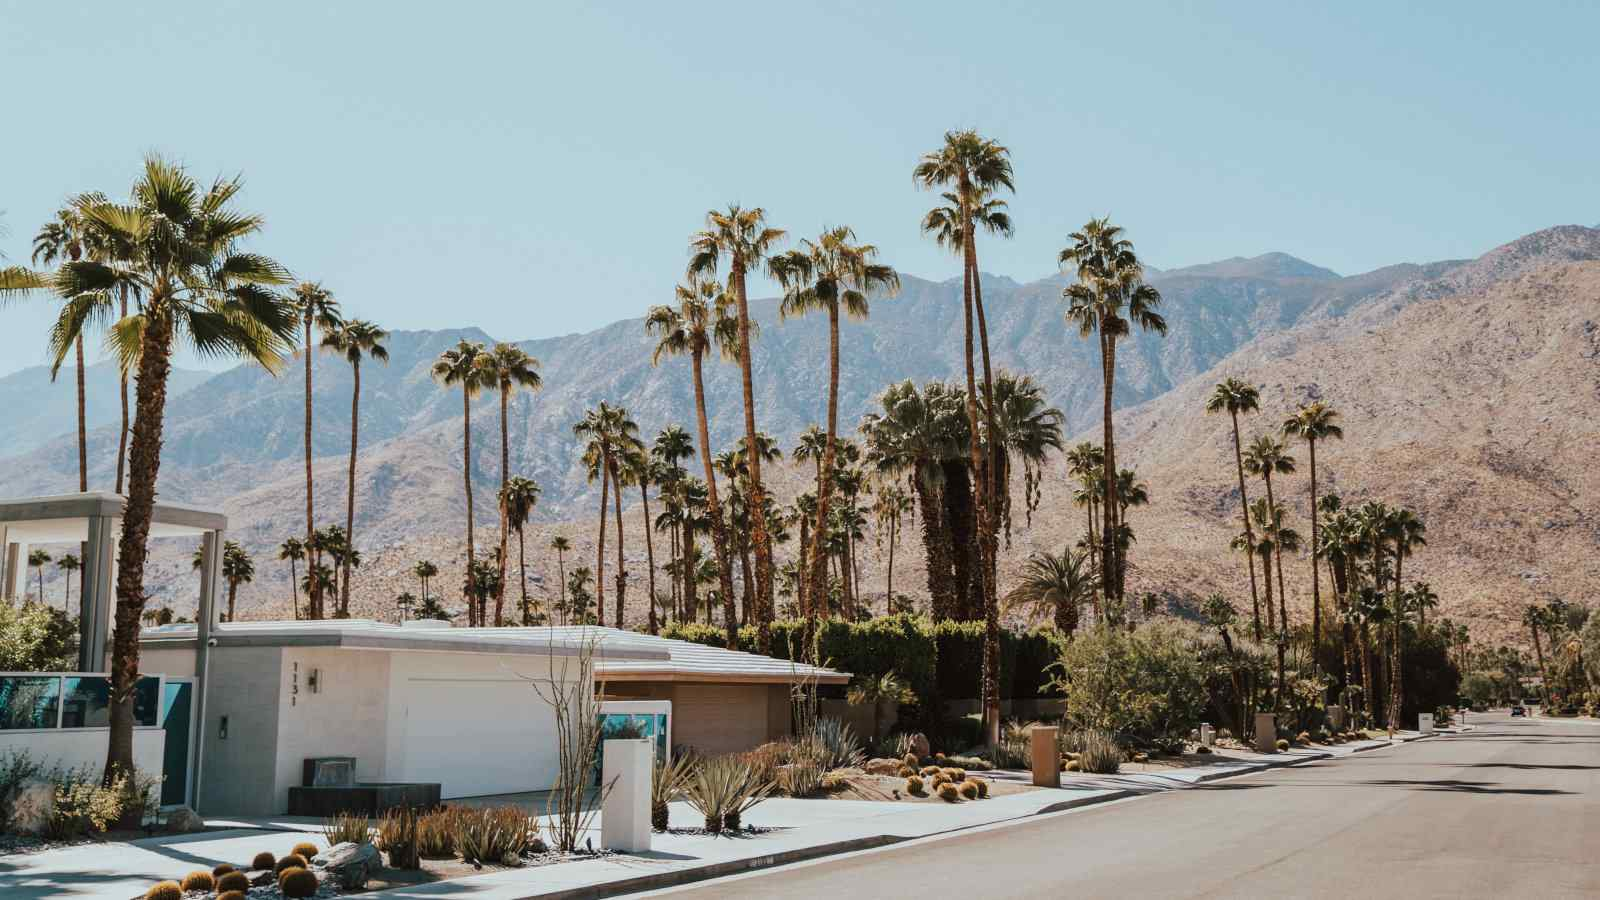 There's more to do in Palm Springs than just relax by the pool